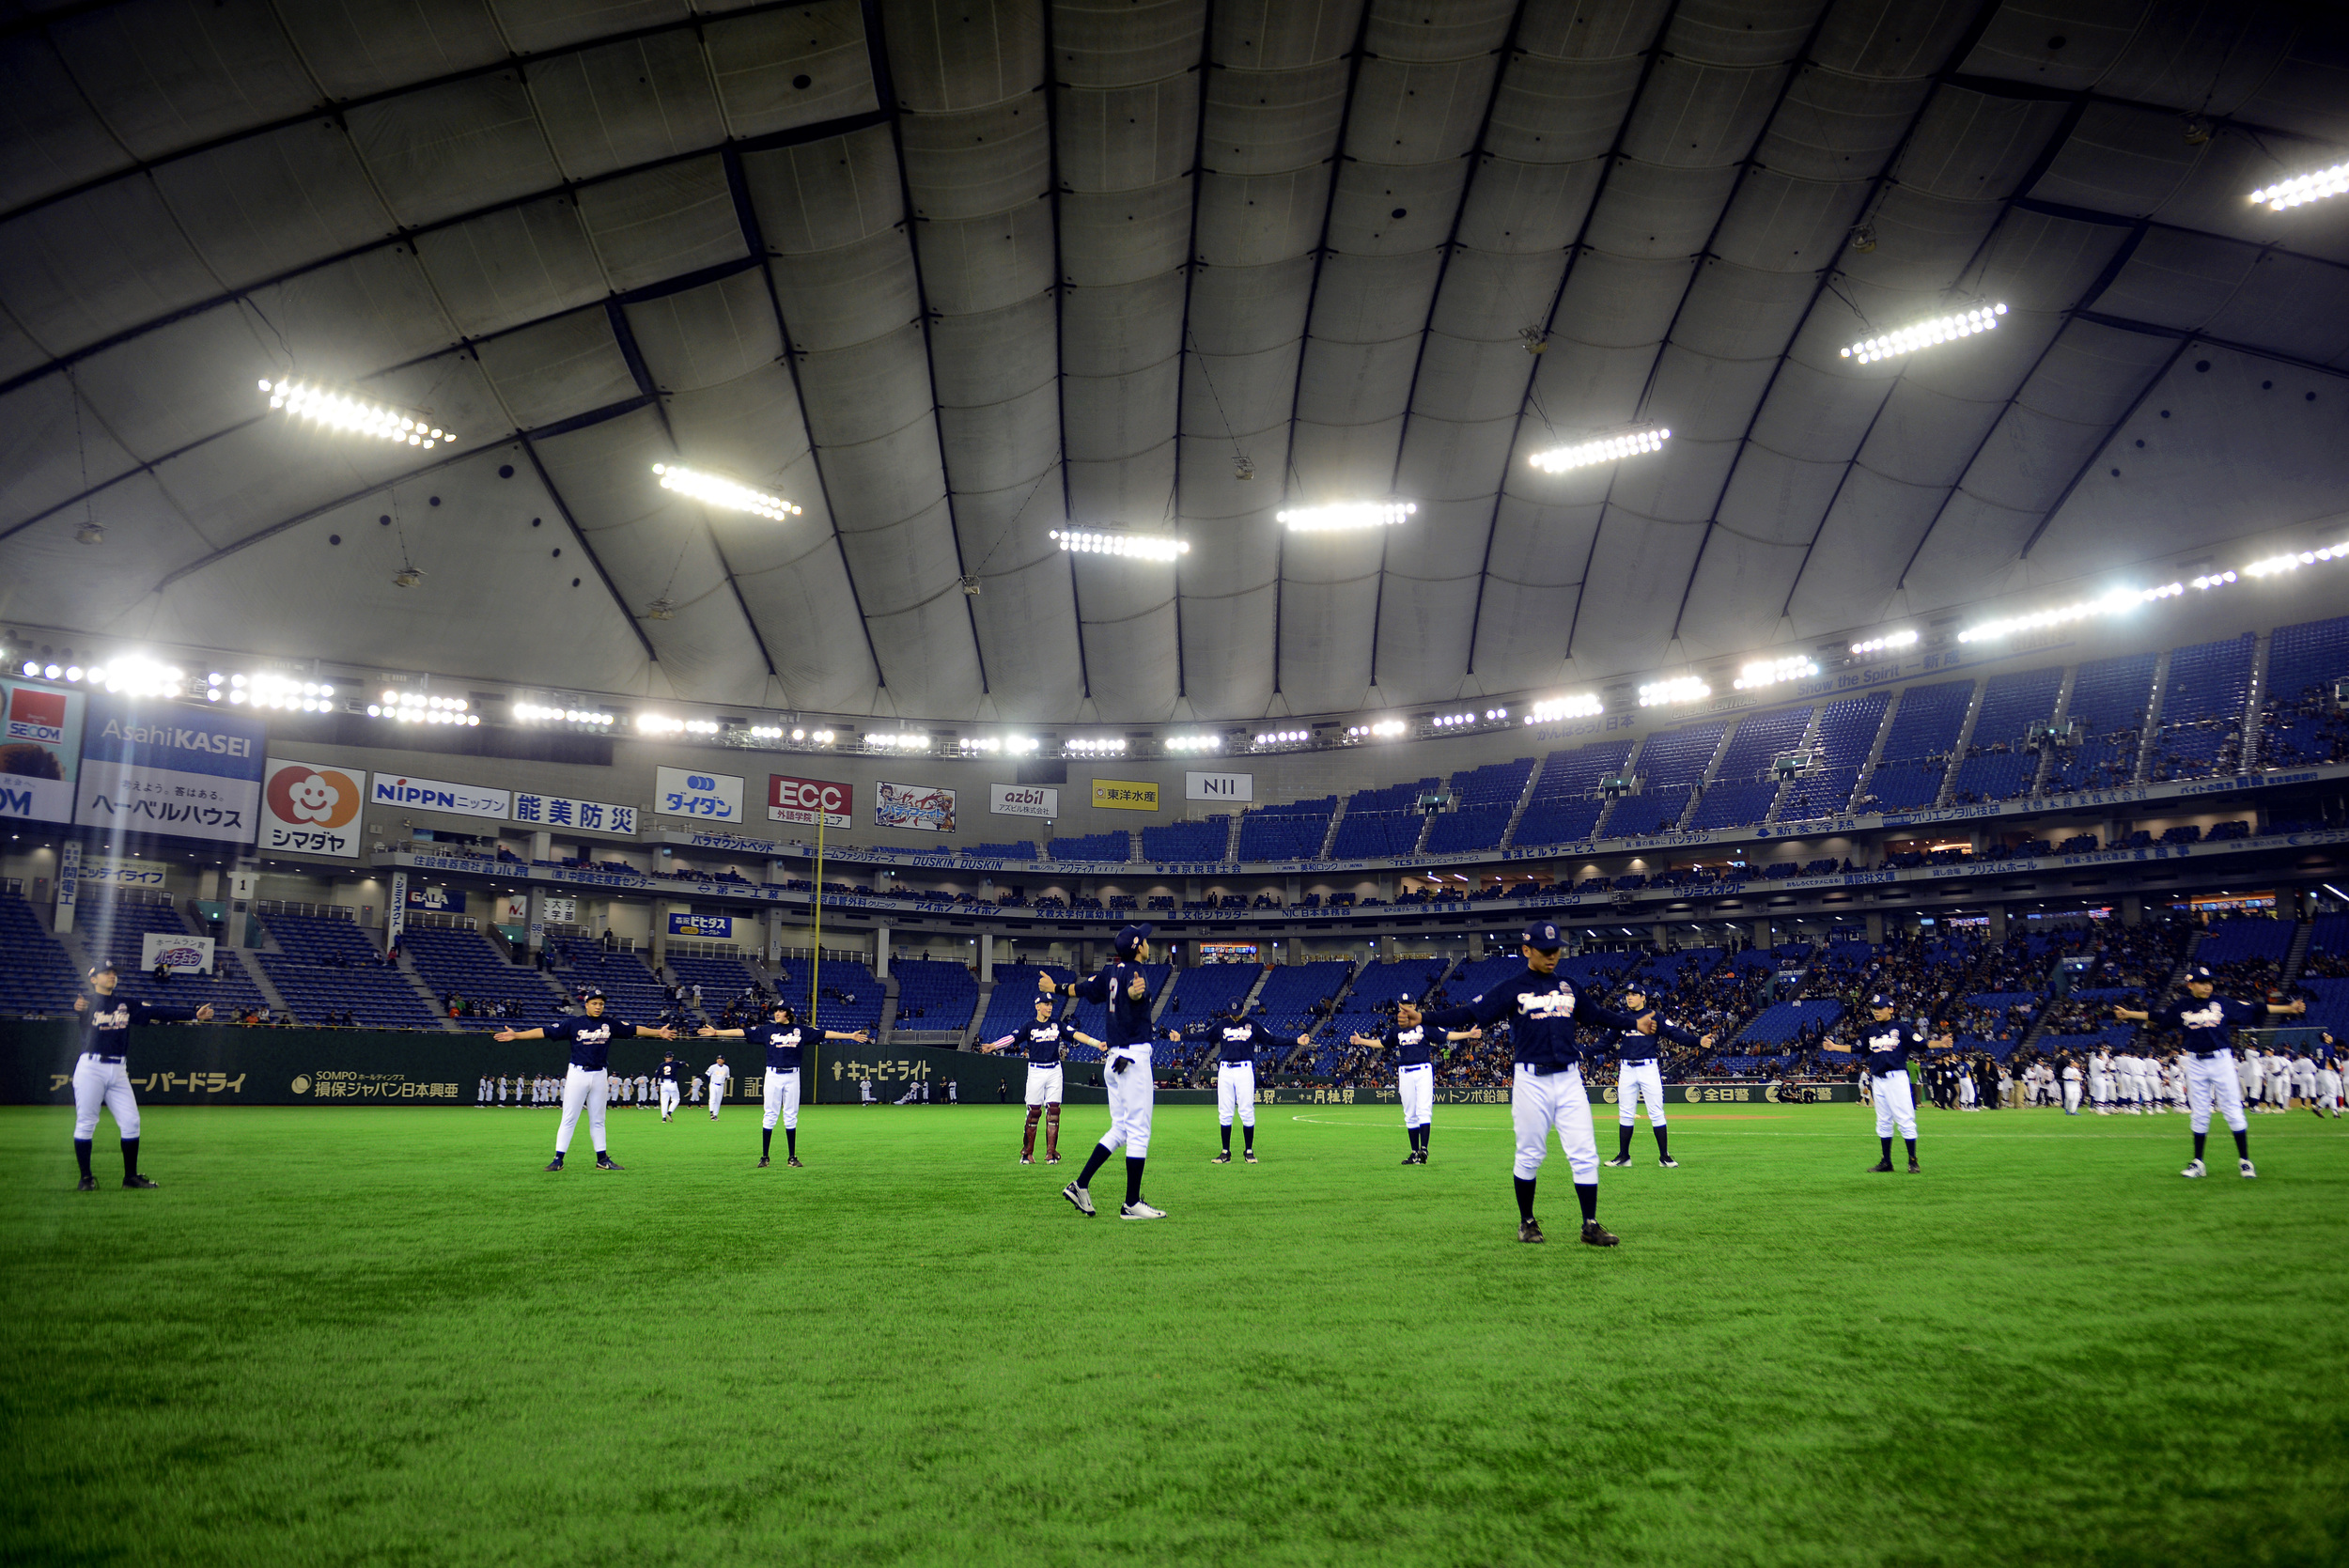 Players from Team Jeter warm up before the Tomodachi Charity Baseball Game, March 21, 2015 at the Tokyo Dome, Japan. Team Jeter played against Team Matsui in an effort to raise awareness about children affected by the Great East Japan Earthquake. (U.S. Air Force photo by Airman 1st Class Delano Scott/Released)